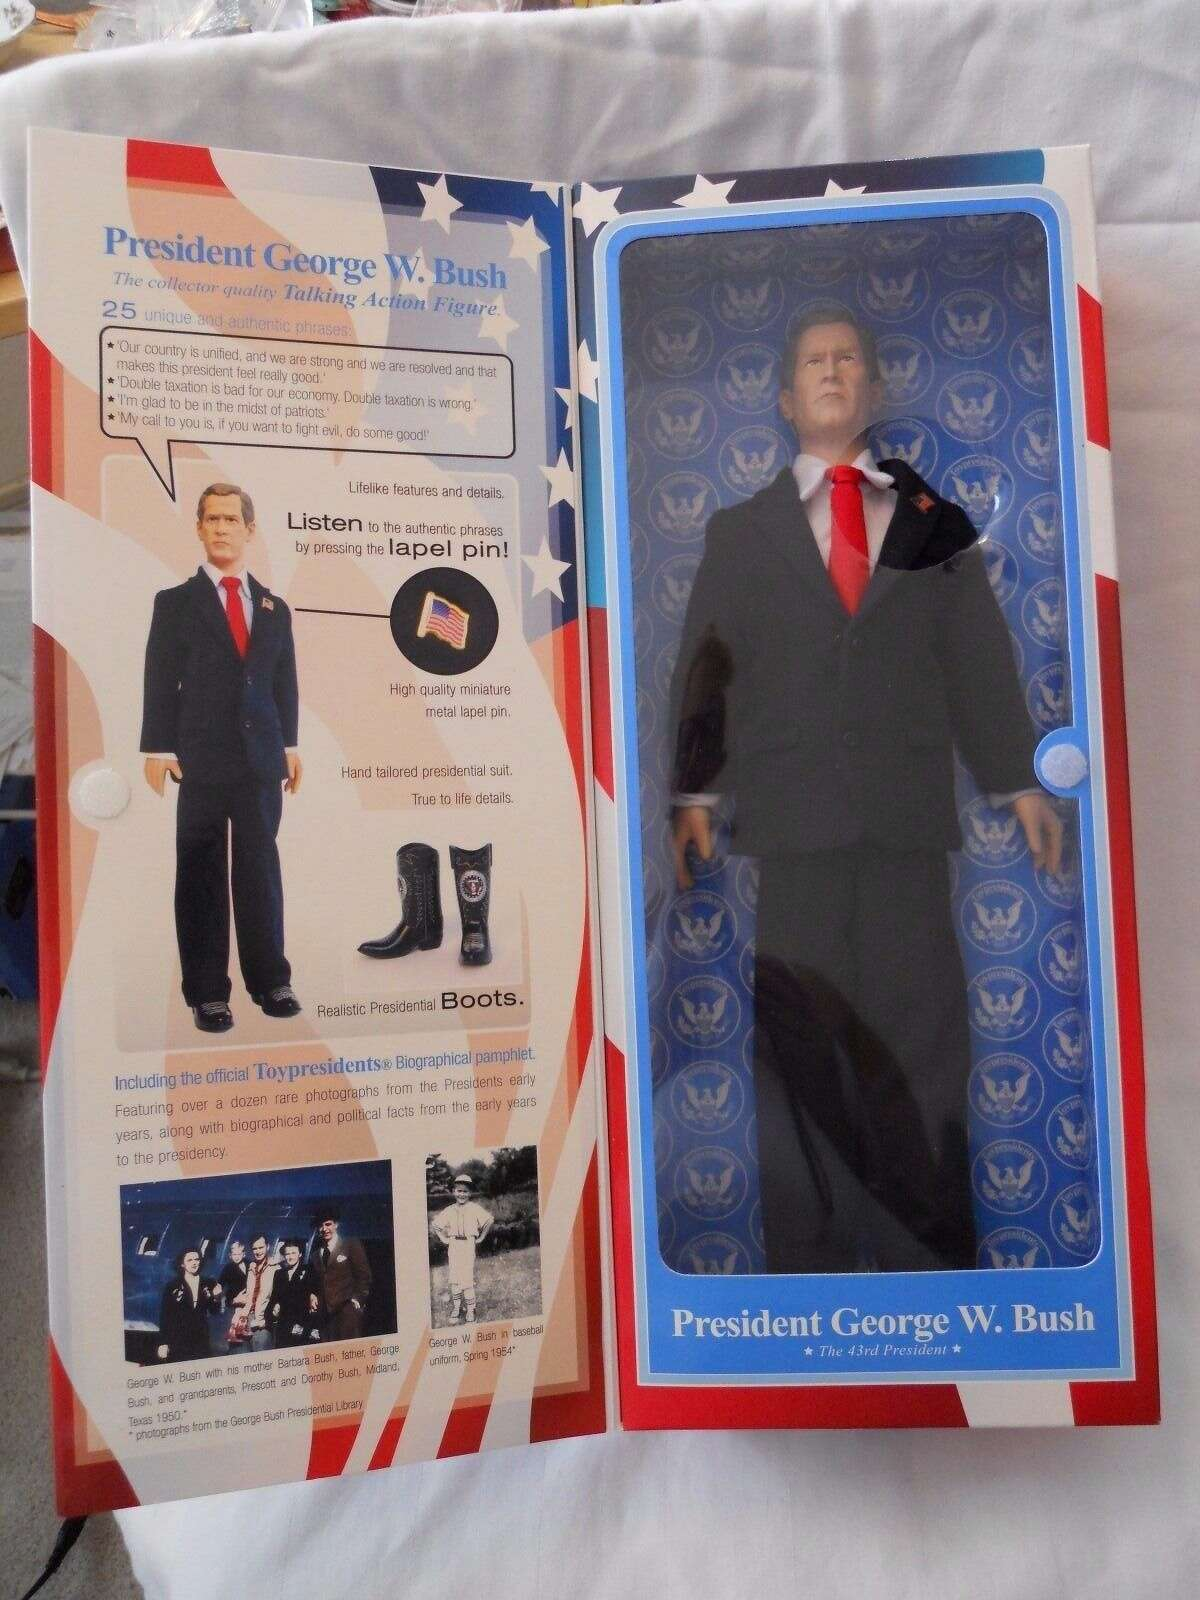 PHOTOS: Former President George W. Bush as portrayed by toys You can celebrate the birth of the 43rd President of the United States by purchasing one of several dolls featuring his likeness on eBay. Of course, some dolls are more flattering than others. Click through to see more versions of the Dubya in toy form...